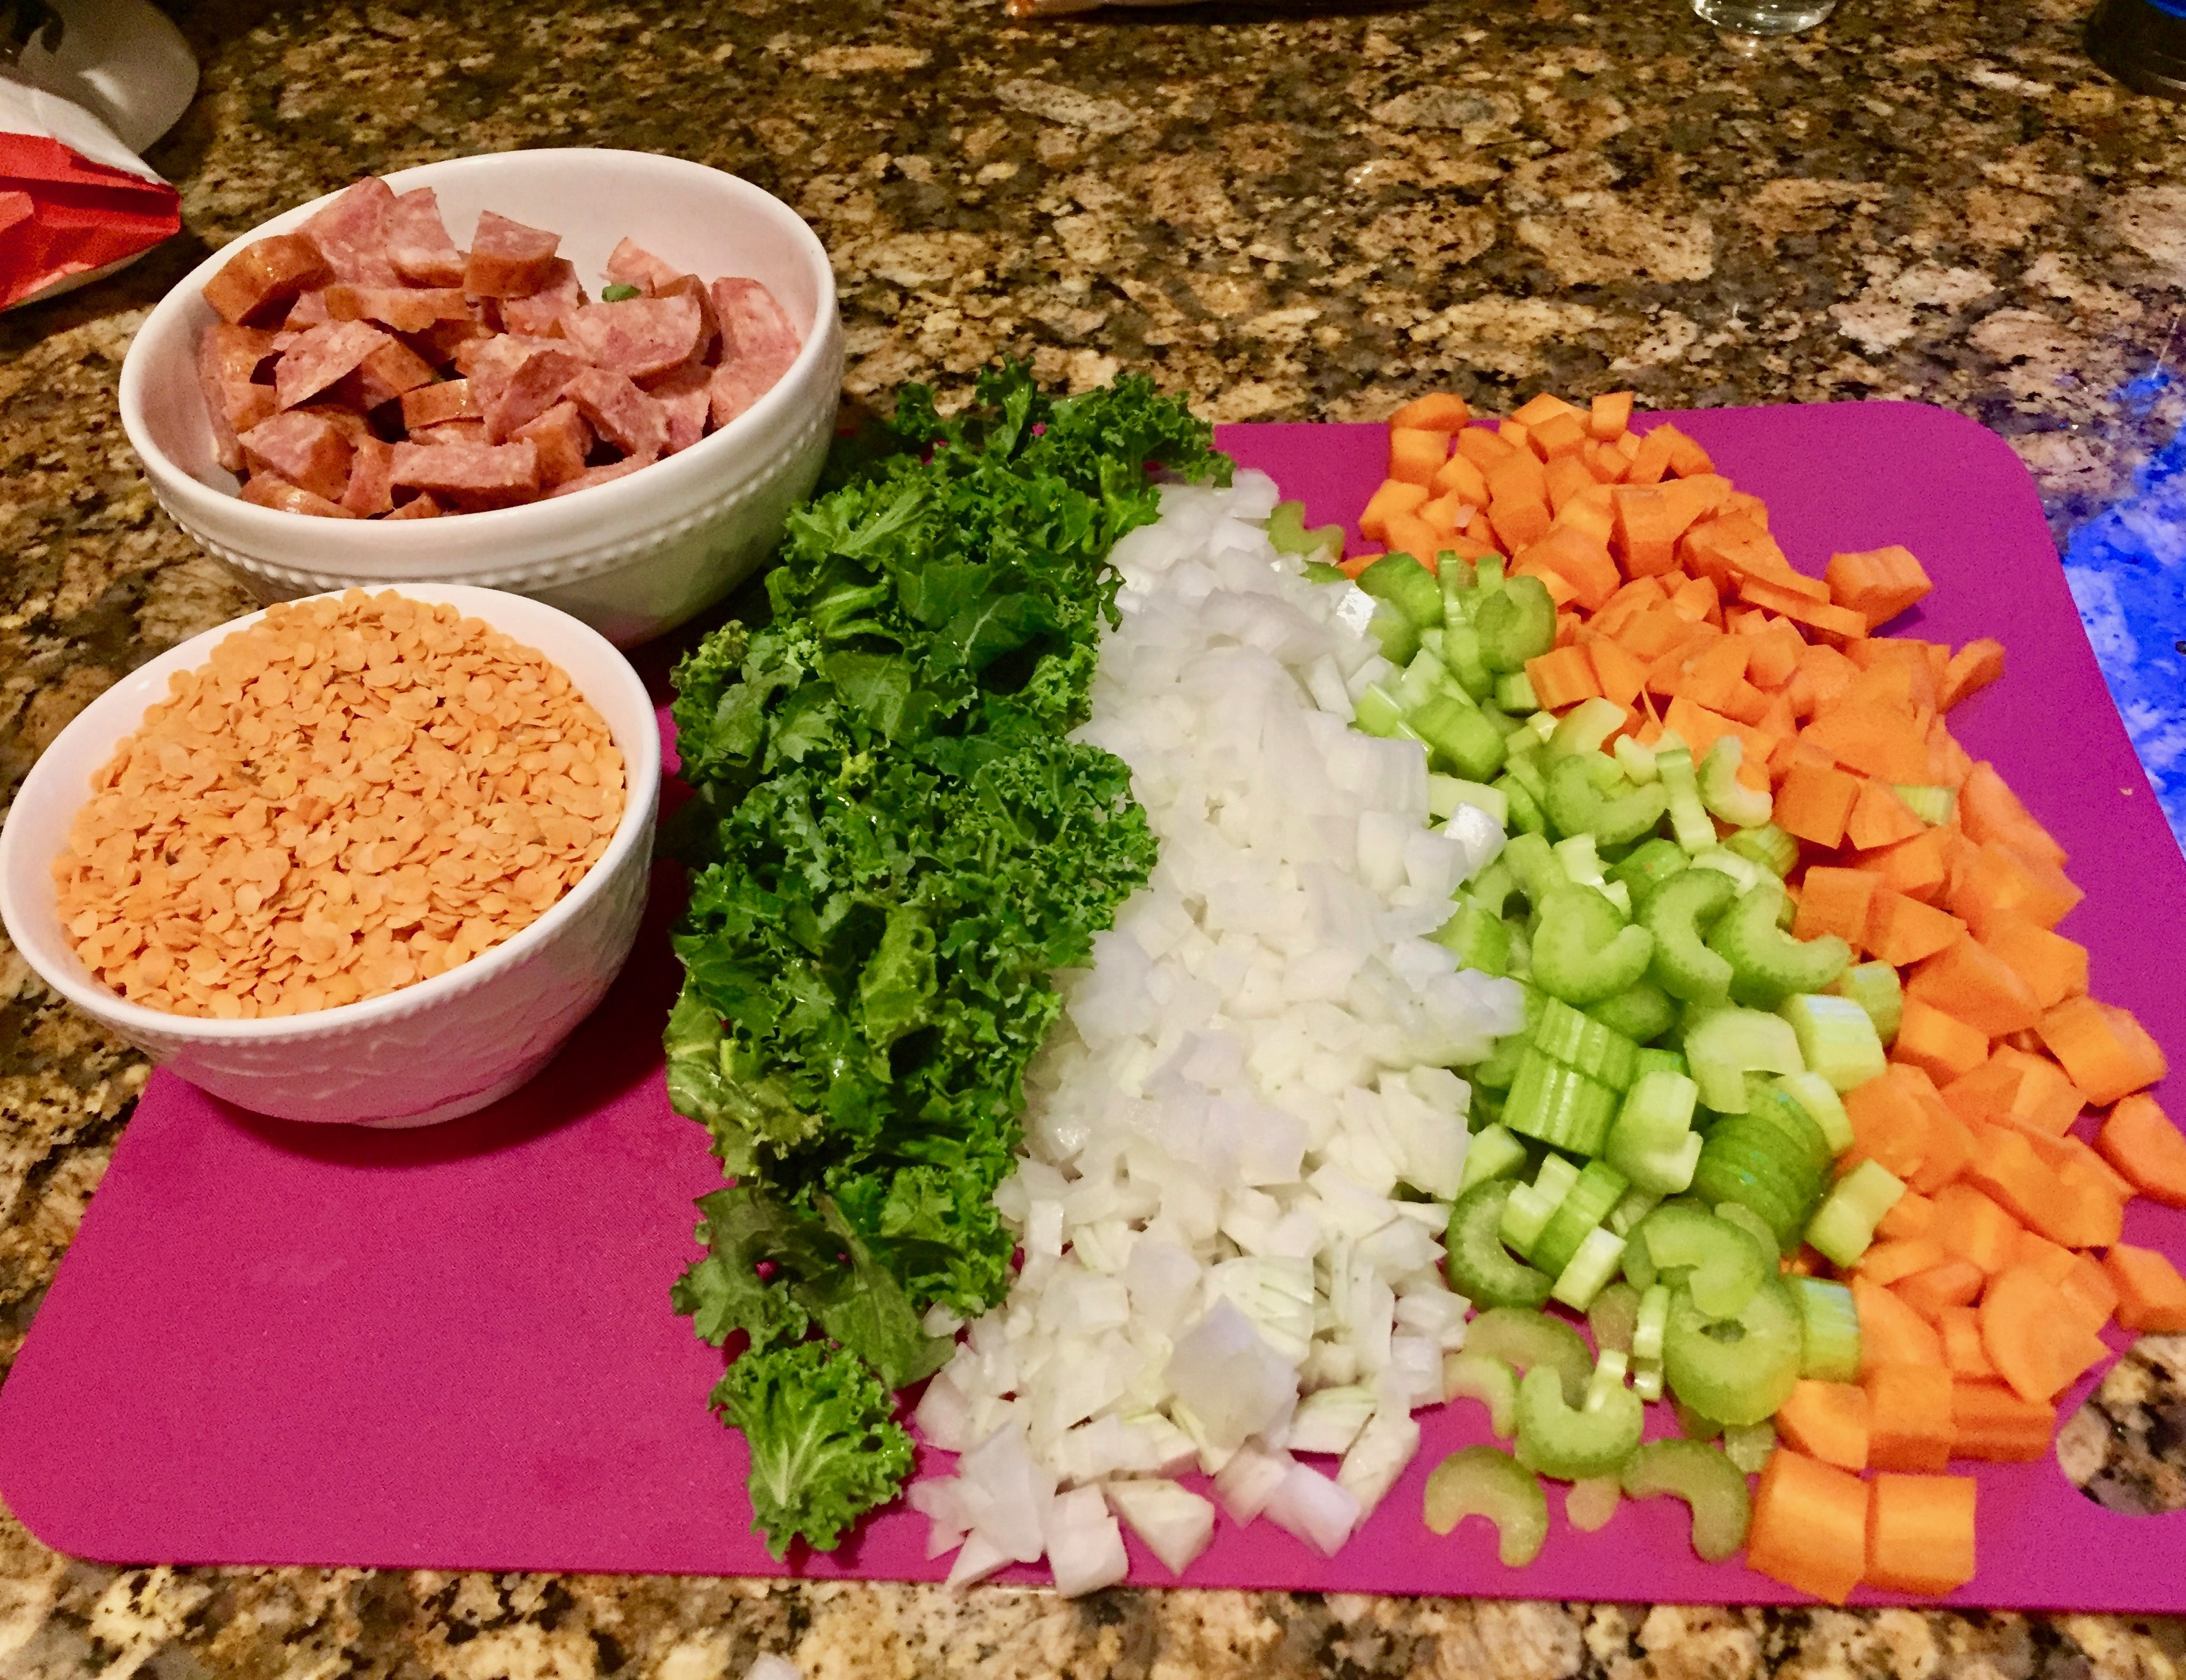 lentil soup ingredients 2.jpg